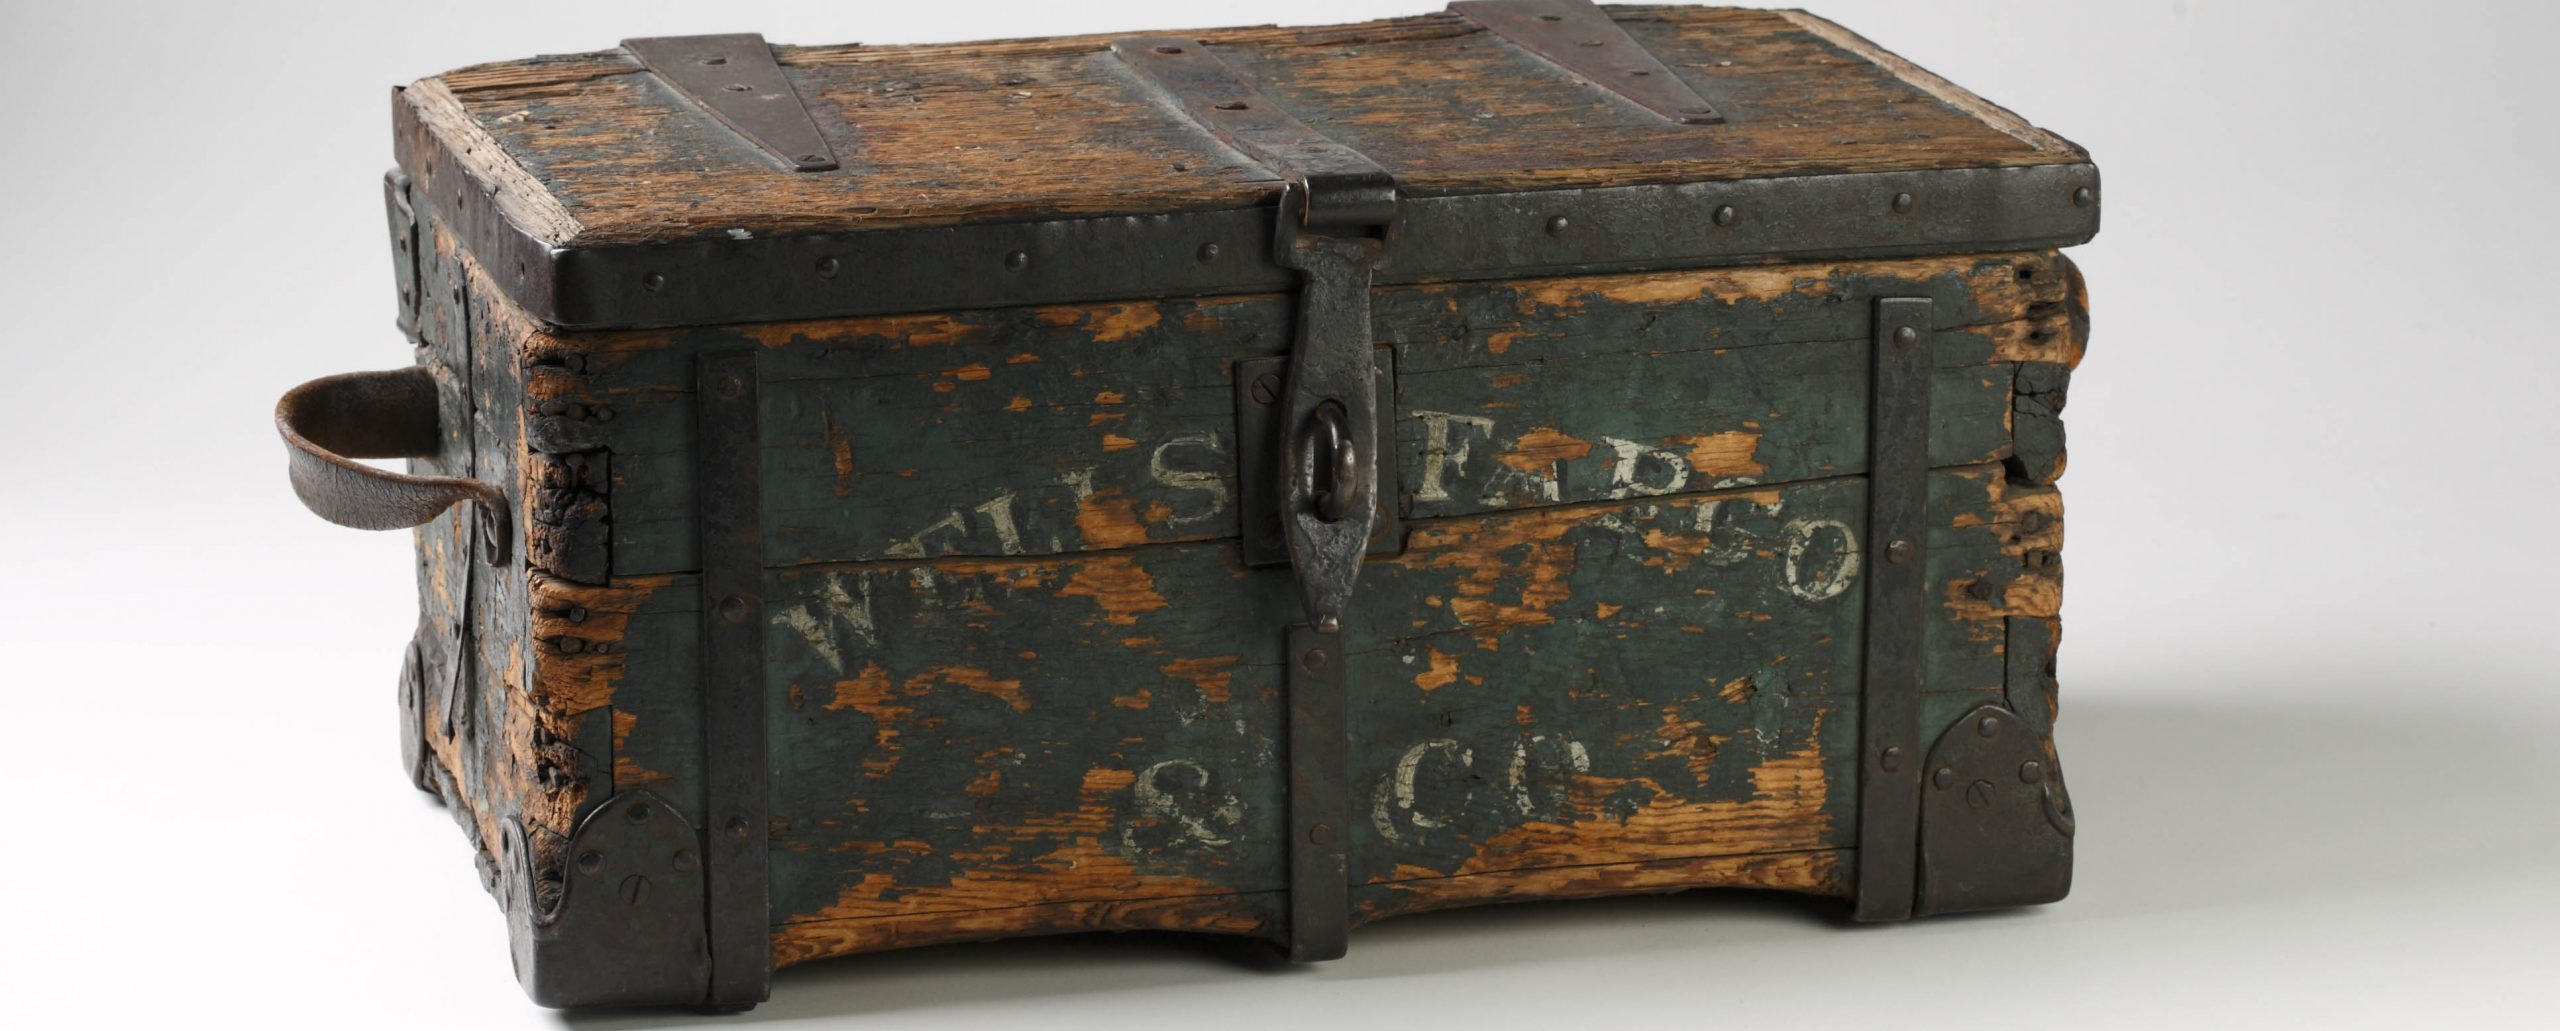 Wells Fargo's sturdy treasure box